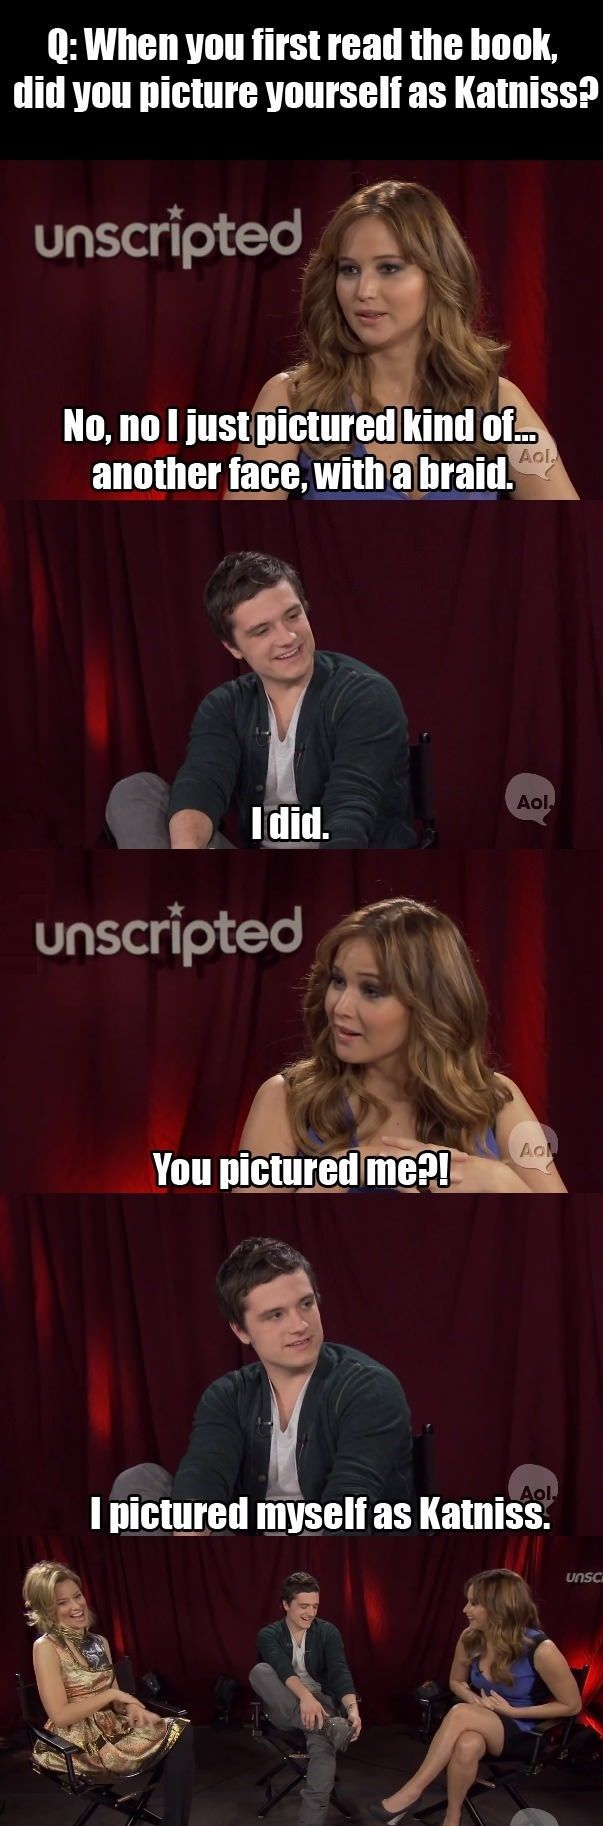 funny Jennifer Lawrence and Josh Hutcherson interview